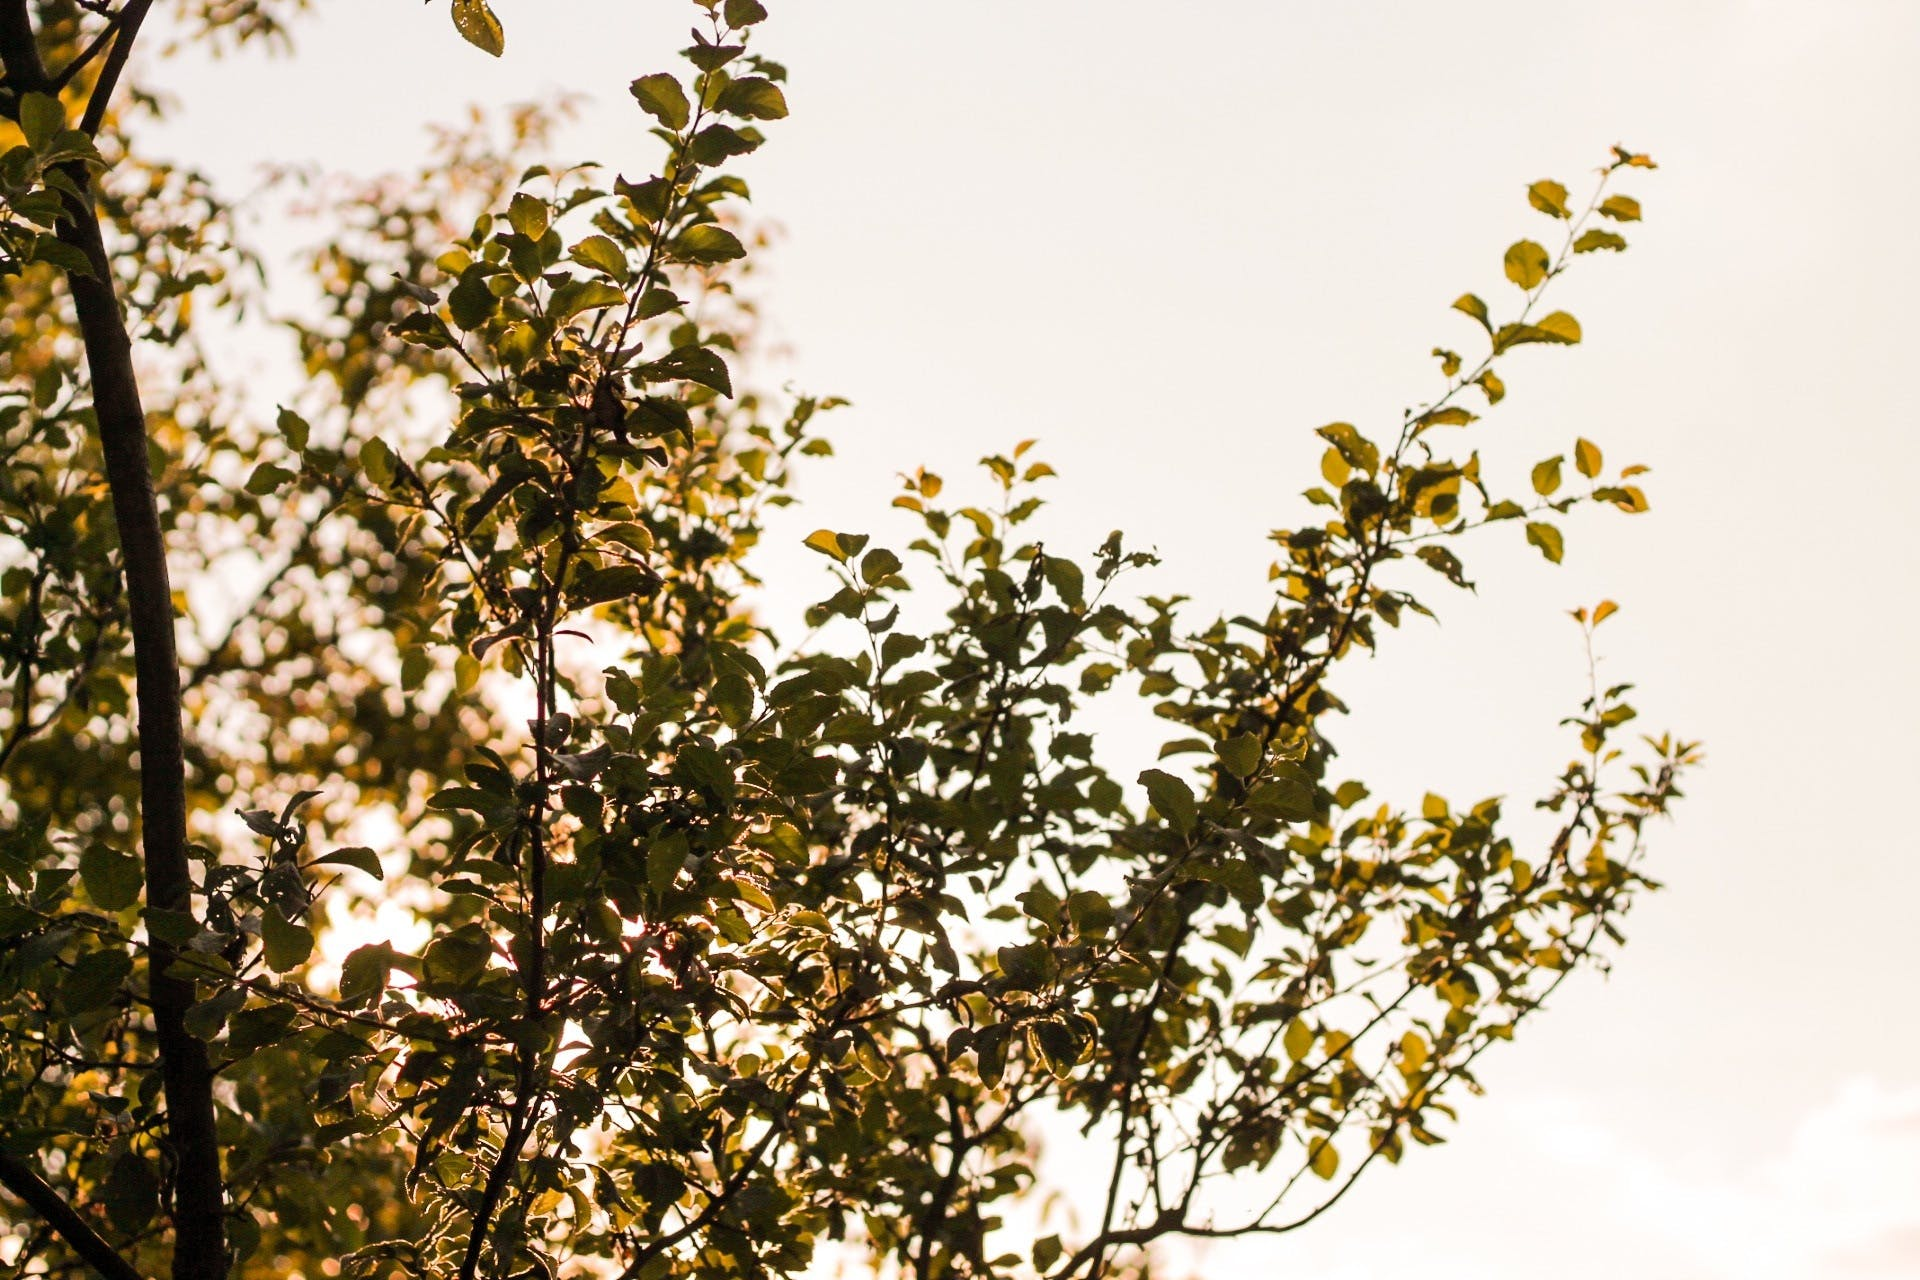 Free stock photo of nature, sky, forest, branches